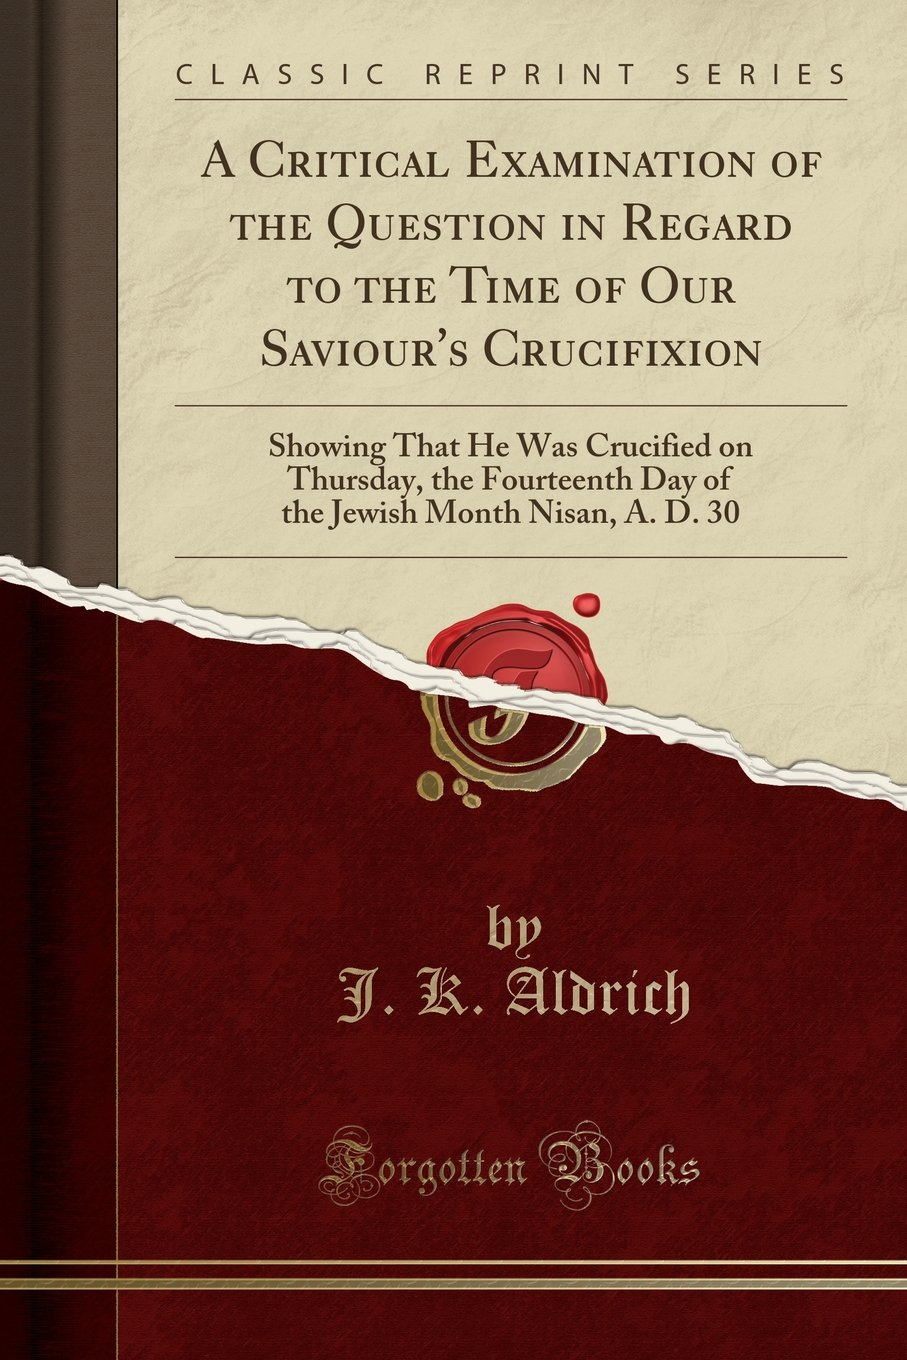 Read Online A Critical Examination of the Question in Regard to the Time of Our Saviour's Crucifixion: Showing That He Was Crucified on Thursday, the Fourteenth ... Month Nisan, A. D. 30 (Classic Reprint) pdf epub